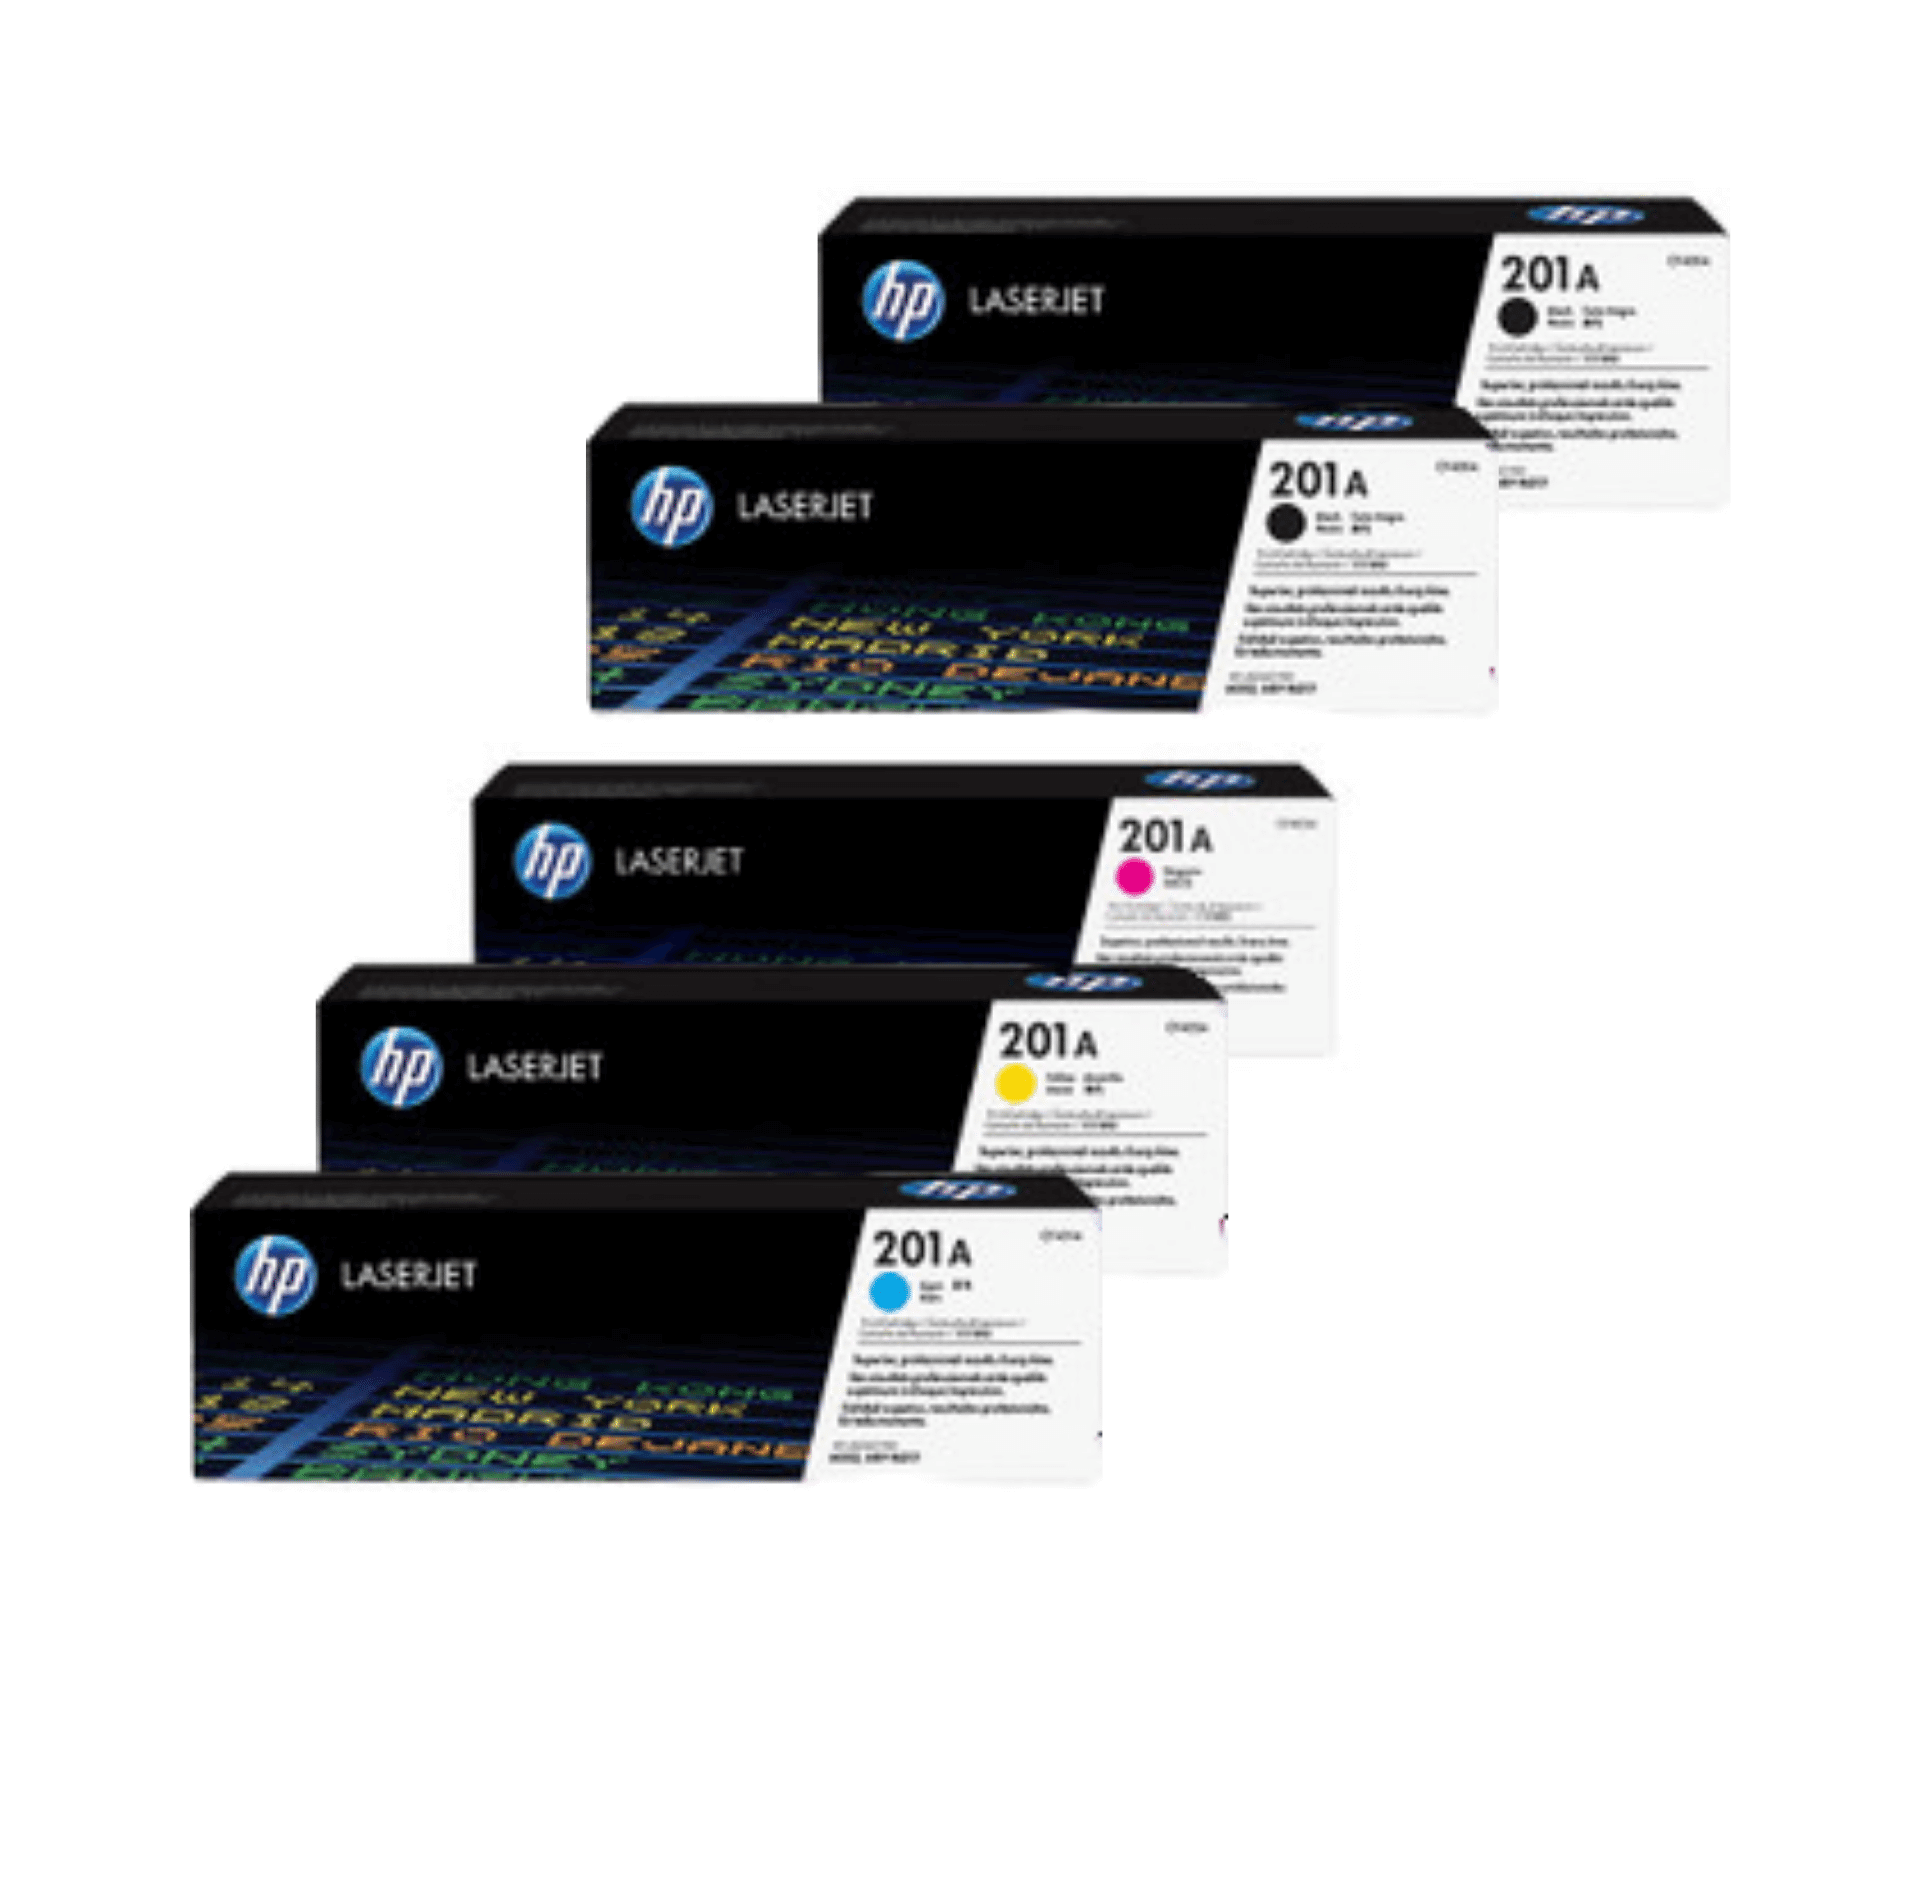 HP 201A Toner Cartridges Value Pack - Includes: [2 x Black, 1 x Cyan, Magenta, Yellow]